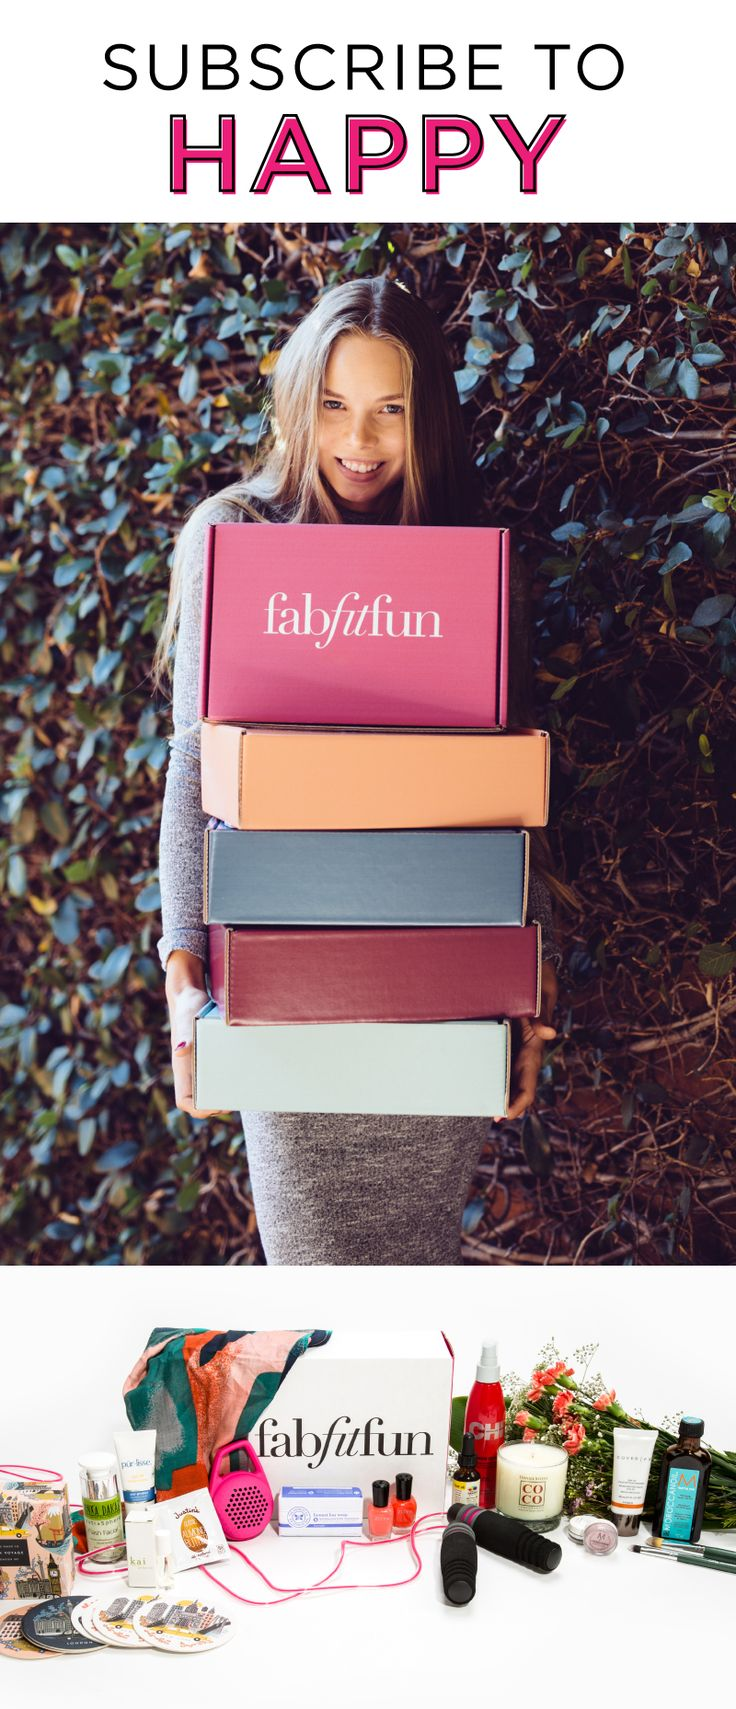 Try out FabFitFun today and see why we're the #1 full-size box. Each box includes the best full-size, premium beauty, fashion, and fitness products curated for each season.